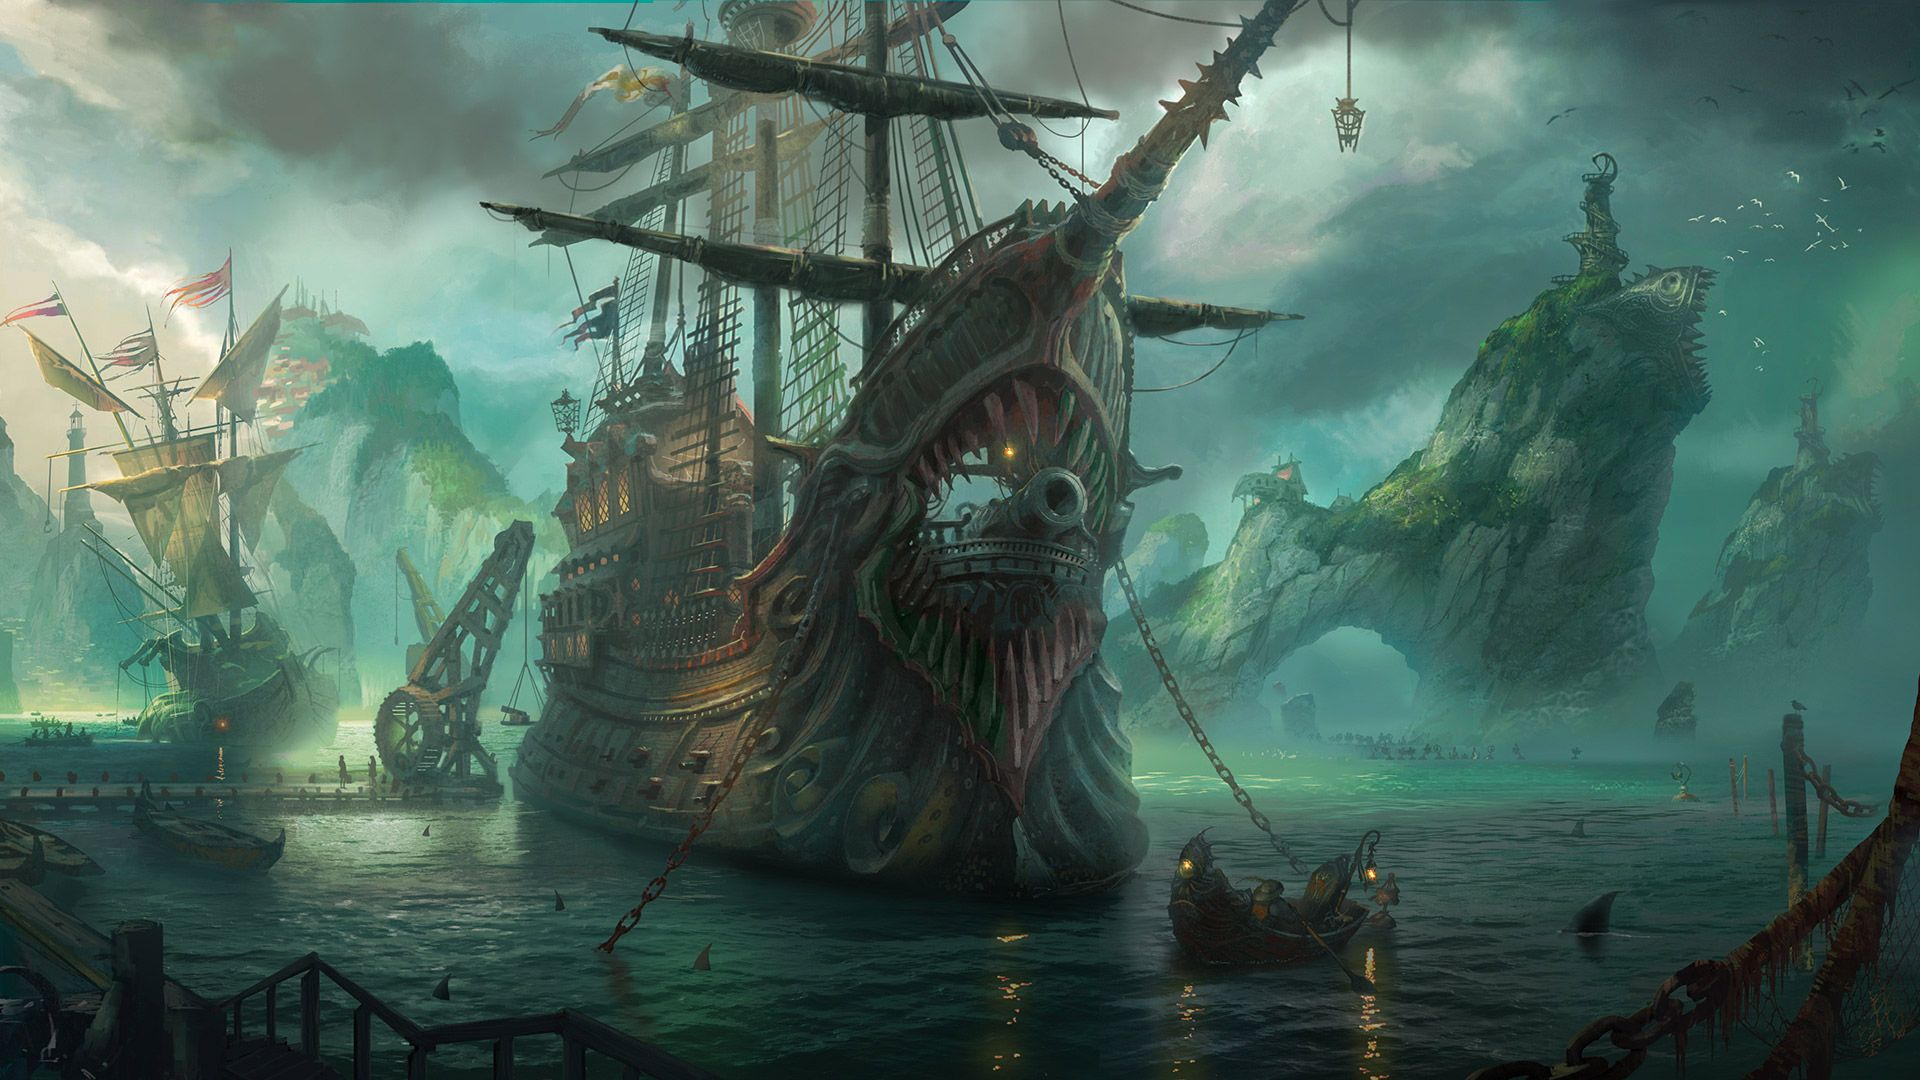 Bilgewater best Picture | Ship artwork, Pirate art, League of legends